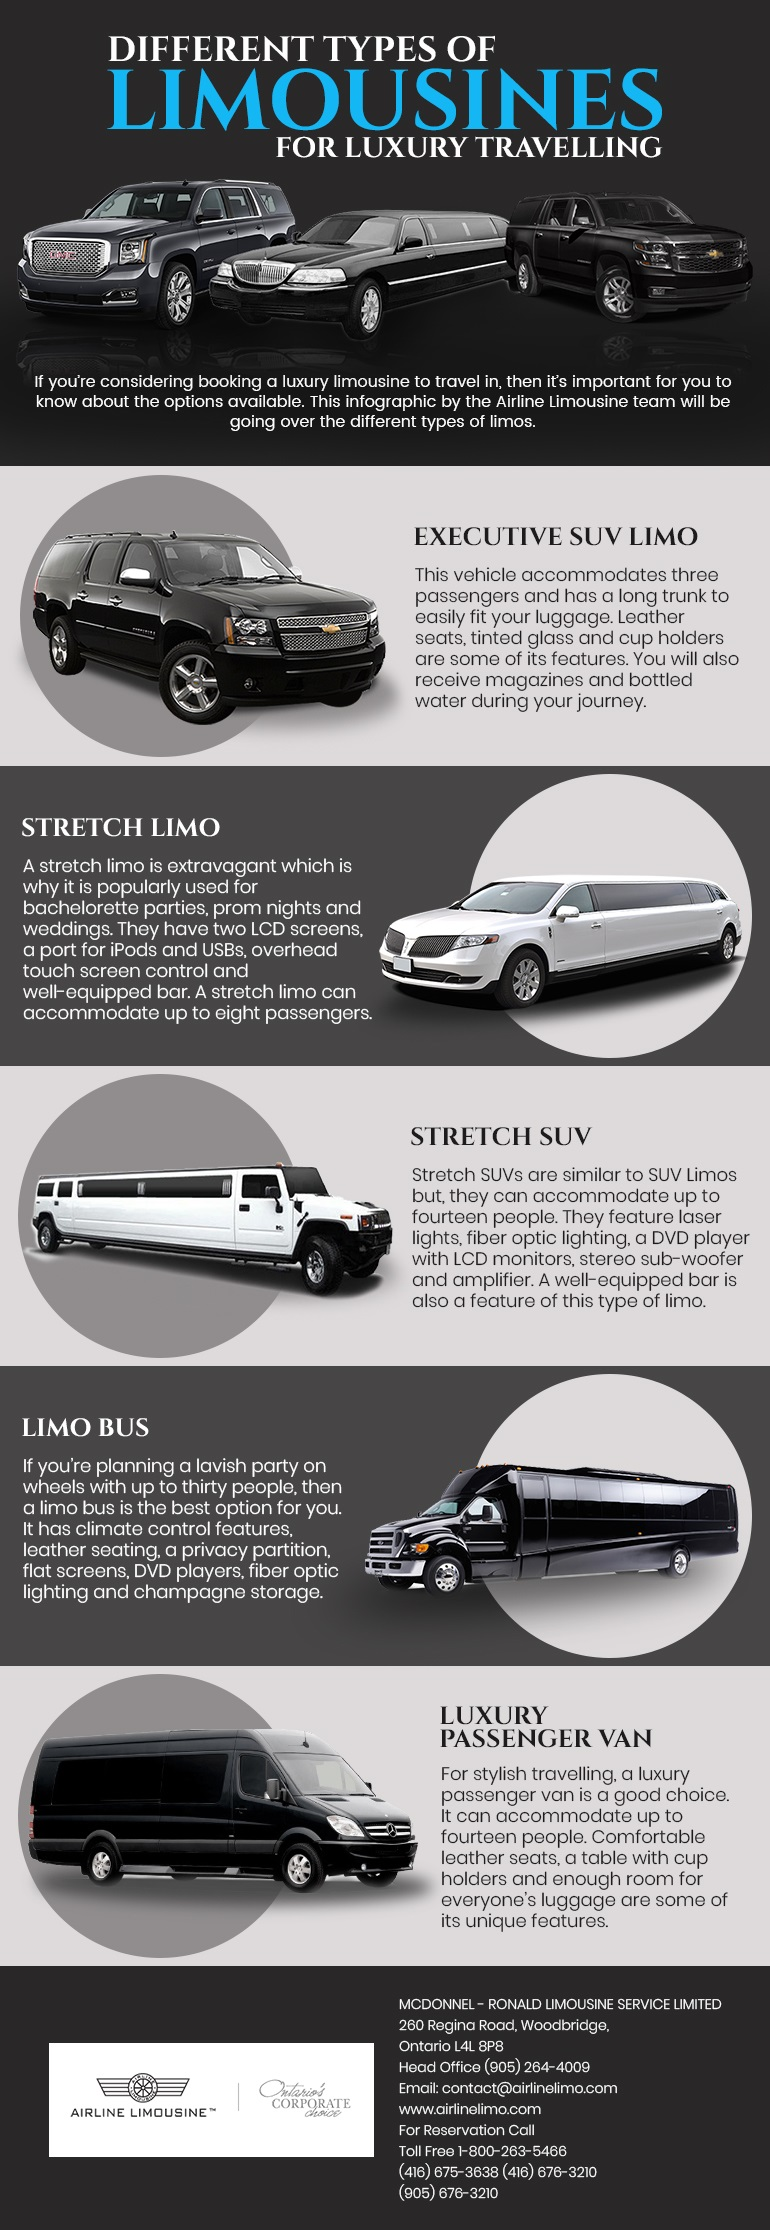 Different Types of Limousines for Luxury Travelling